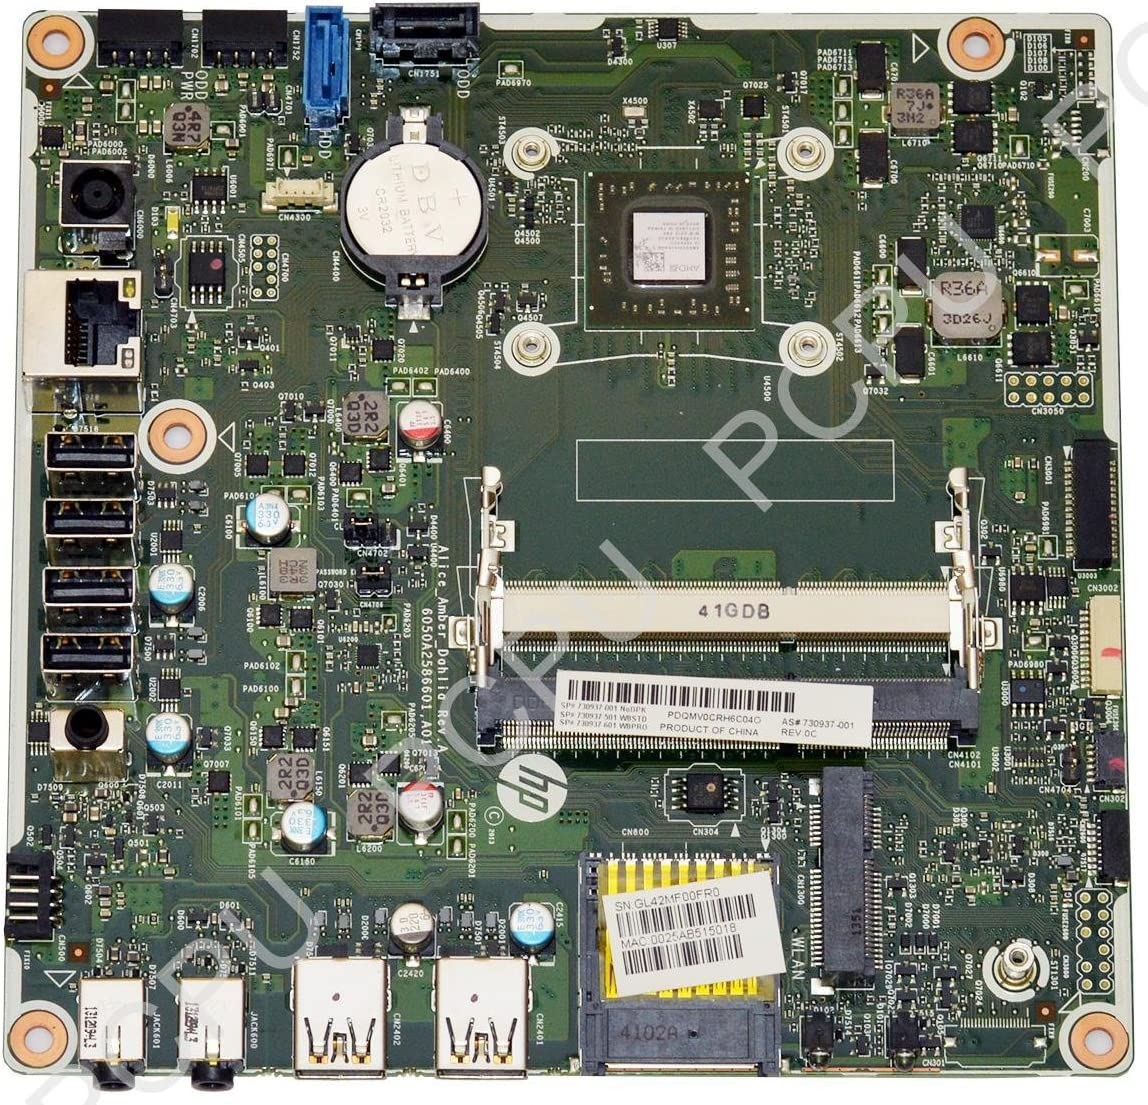 730937-001 HP 23-G110 AIO Alice Amber Motherboard w/ AMD A6-5200 2.0GHz CPU